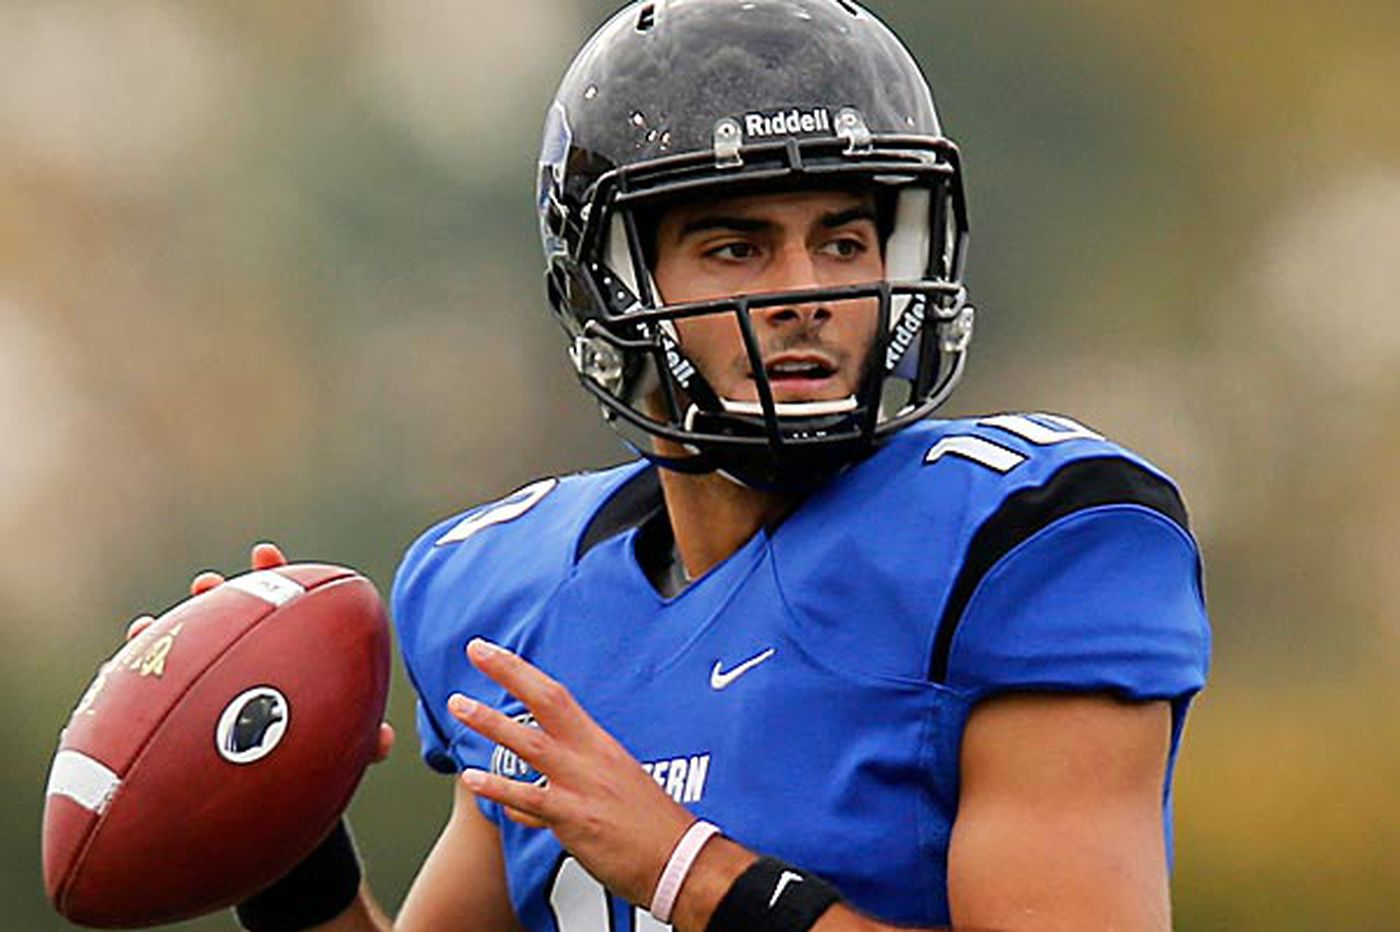 Eastern Illinois' Garoppolo wins Walter Payton Award